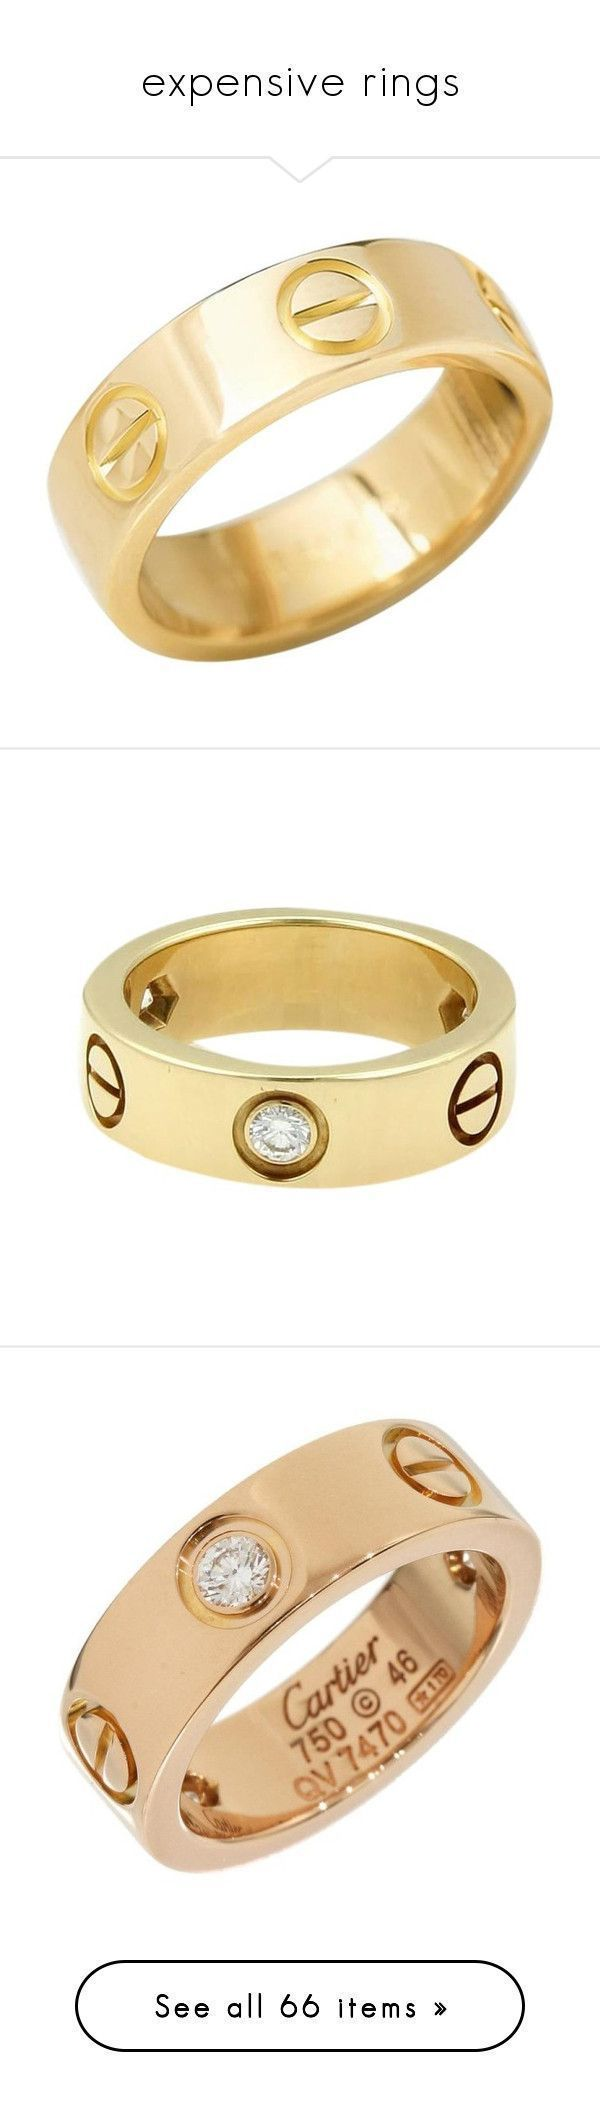 """expensive rings"" by mrstomlinson974 on Polyvore featuring jewelry, rings, band rings, yellow, yellow ring, 18k gold ring, gold jewelry, gold rings, yellow gold band ring and diamond jewelry #diamondbandring #diamondjewelry"